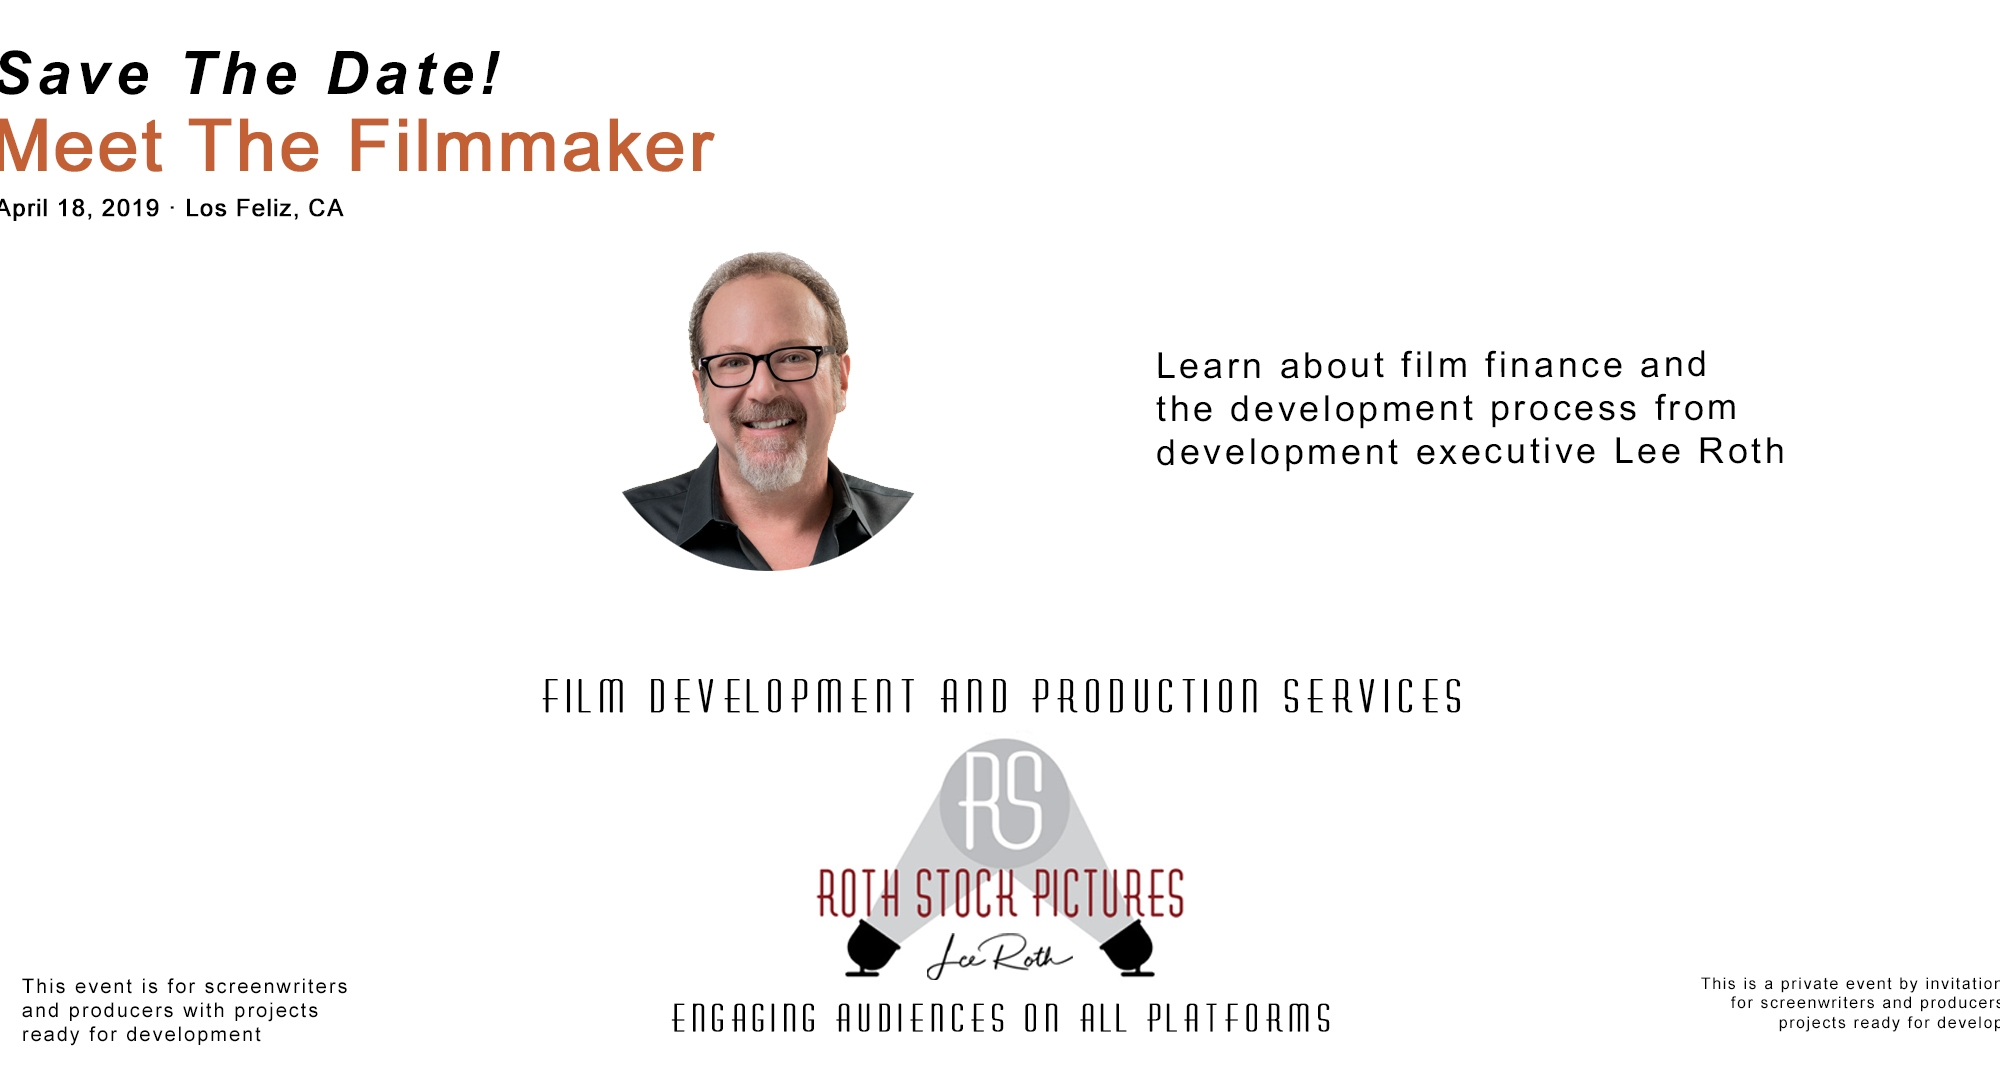 Save The Date - Meet Filmmaker Lee Roth!